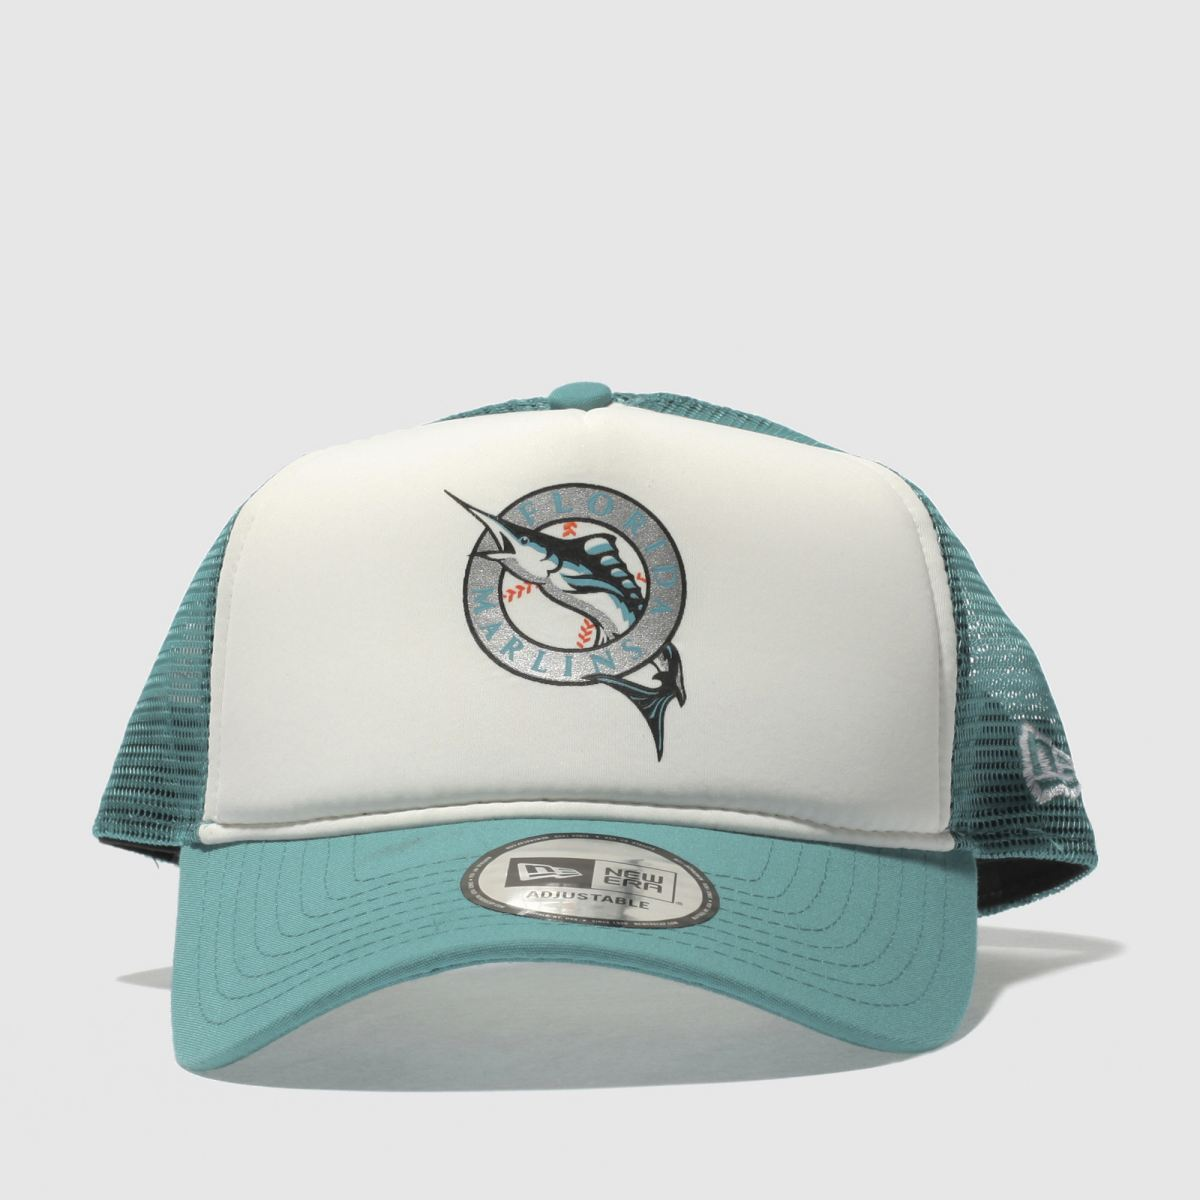 New Era New Era Turquoise Coast To Coast Trucker